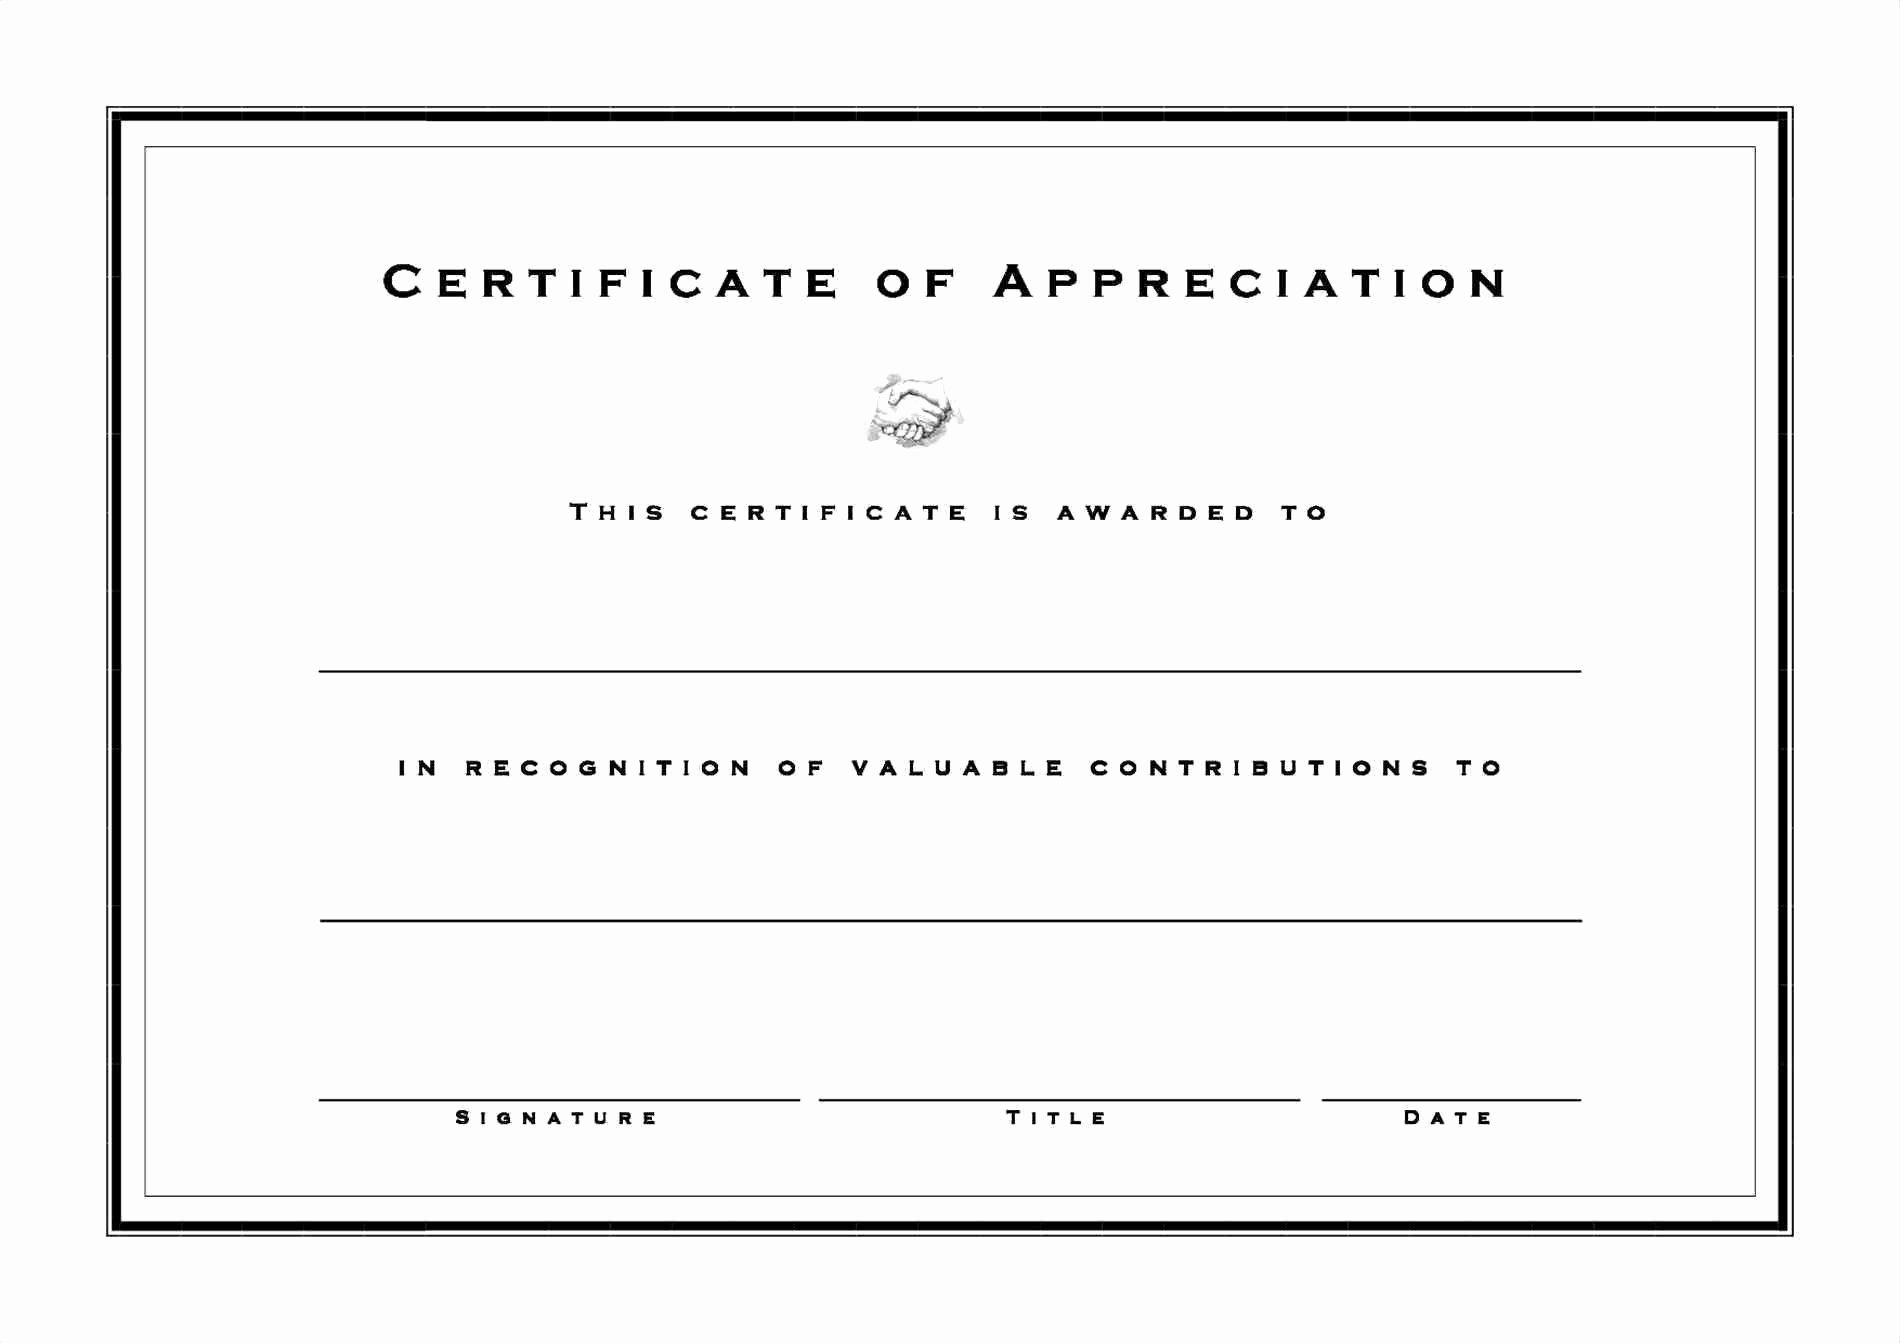 Employee Recognition form Template Lovely Employee Recognition form Template – Versatolelive